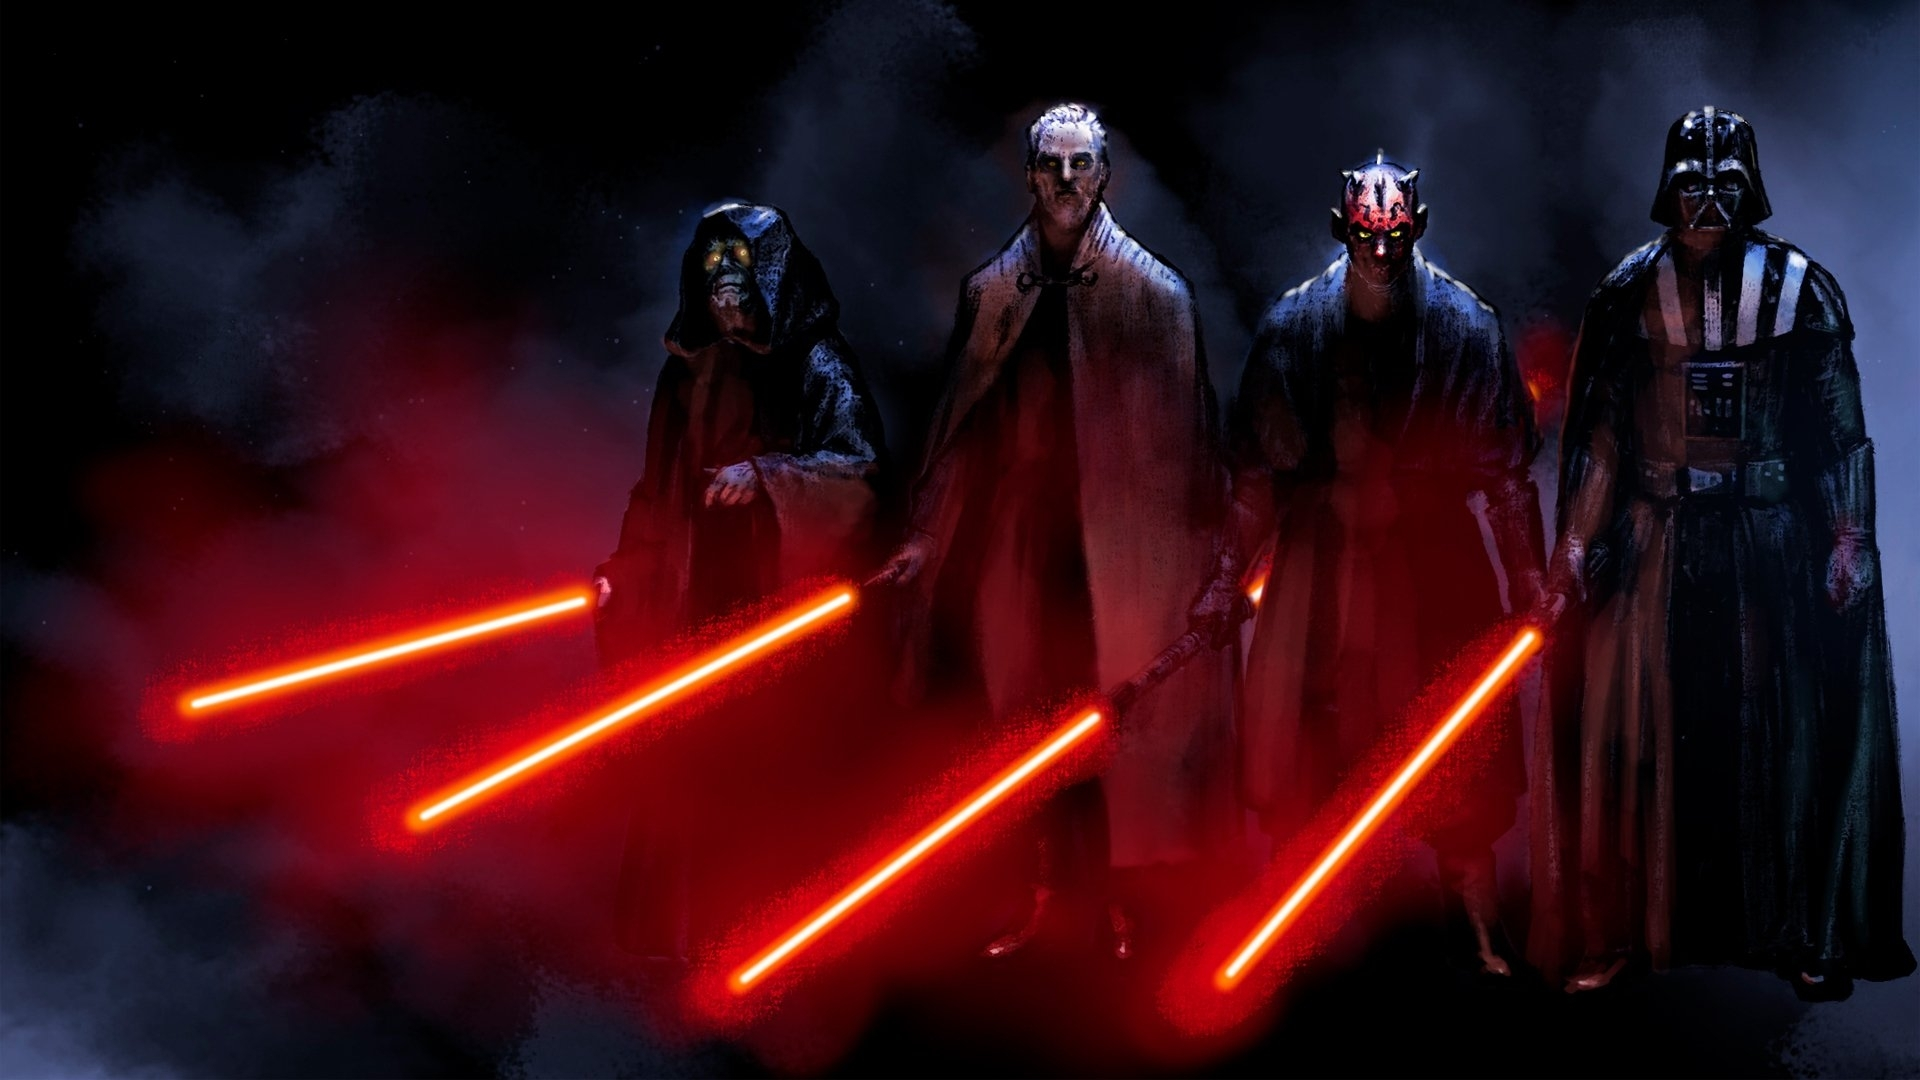 68 sith (star wars) hd wallpapers | background images - wallpaper